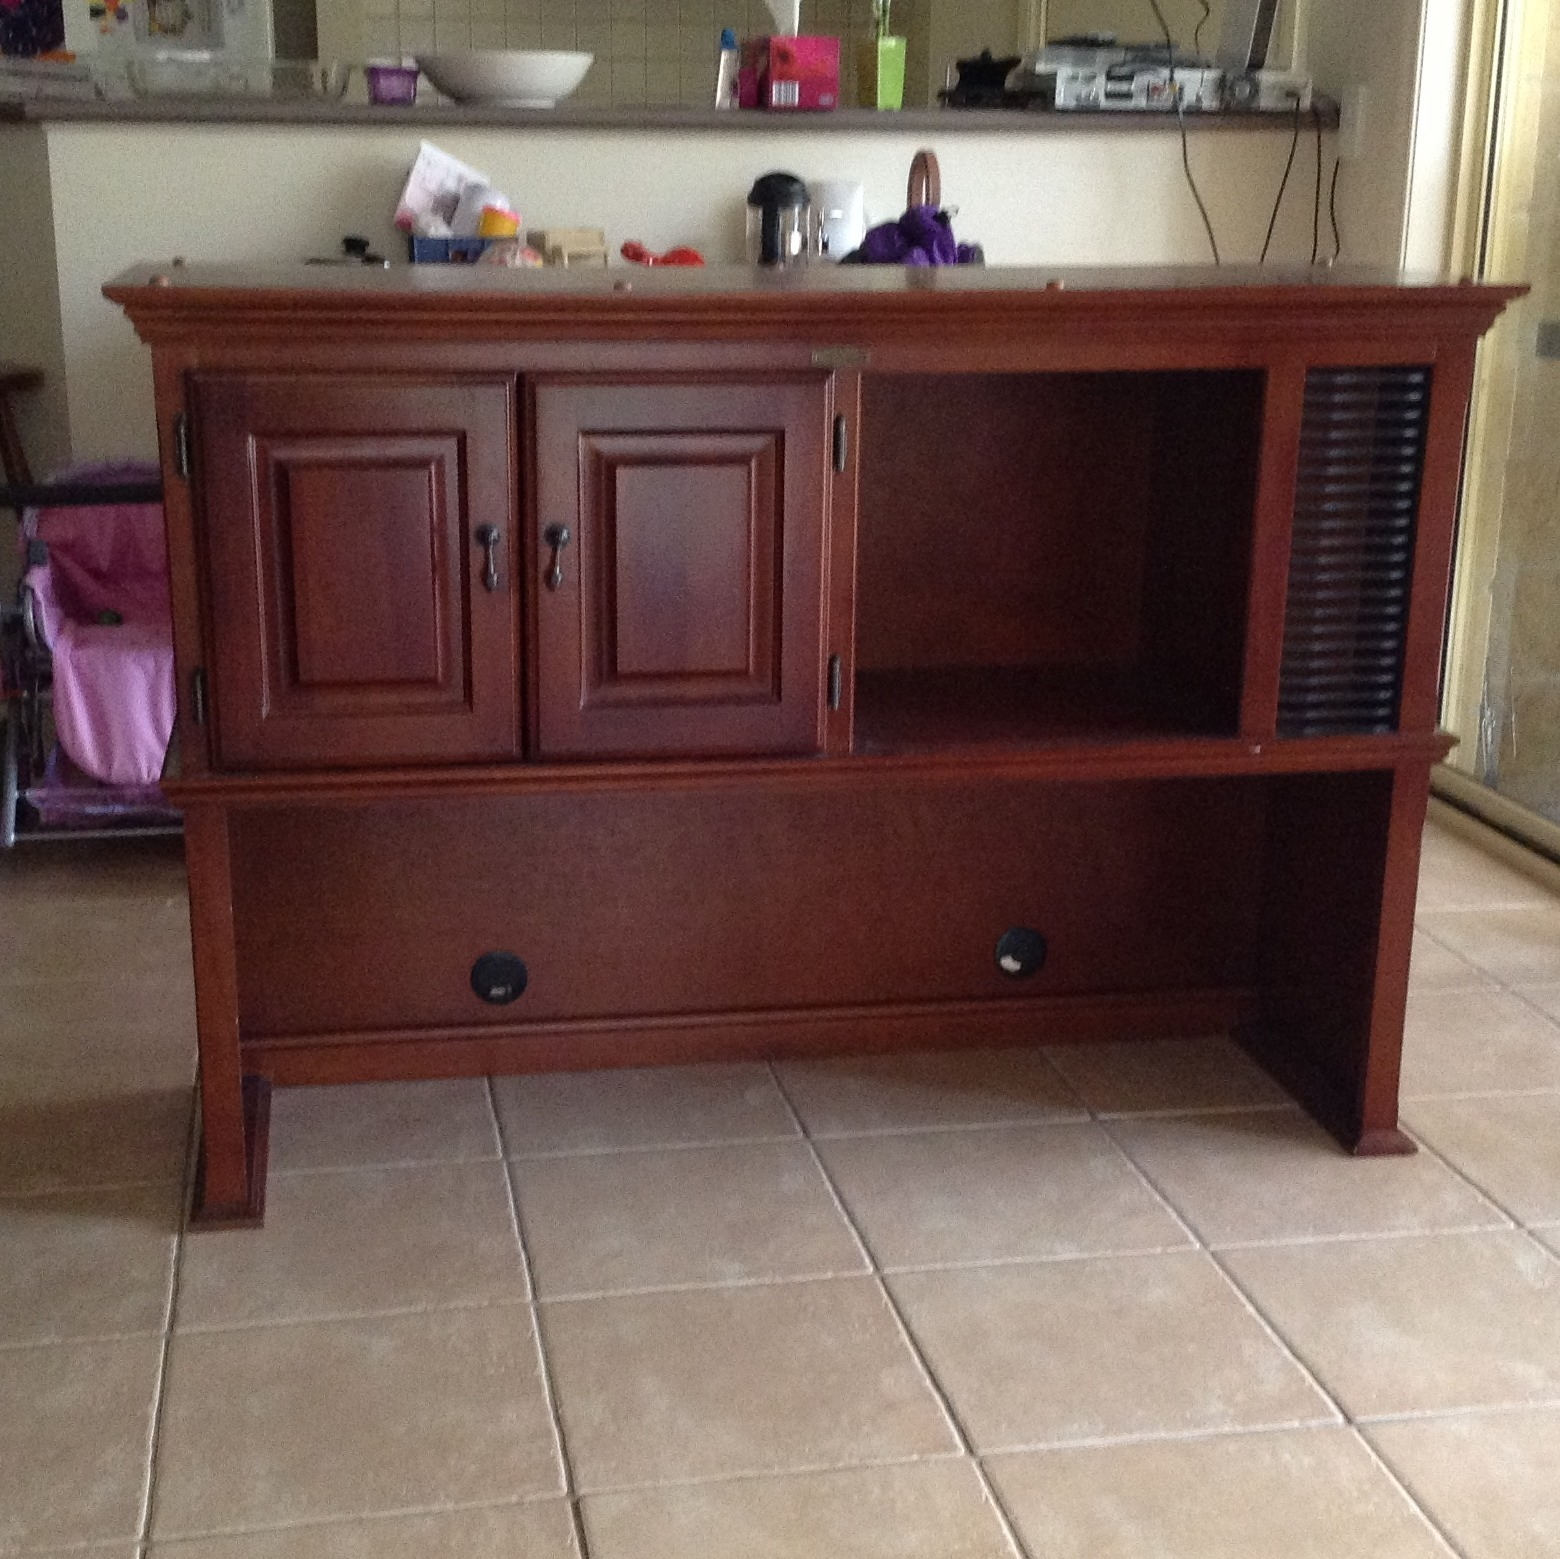 Cheap Diy Computer Desk: Plans For Homemade Computer Desk And Hutch Plans DIY How